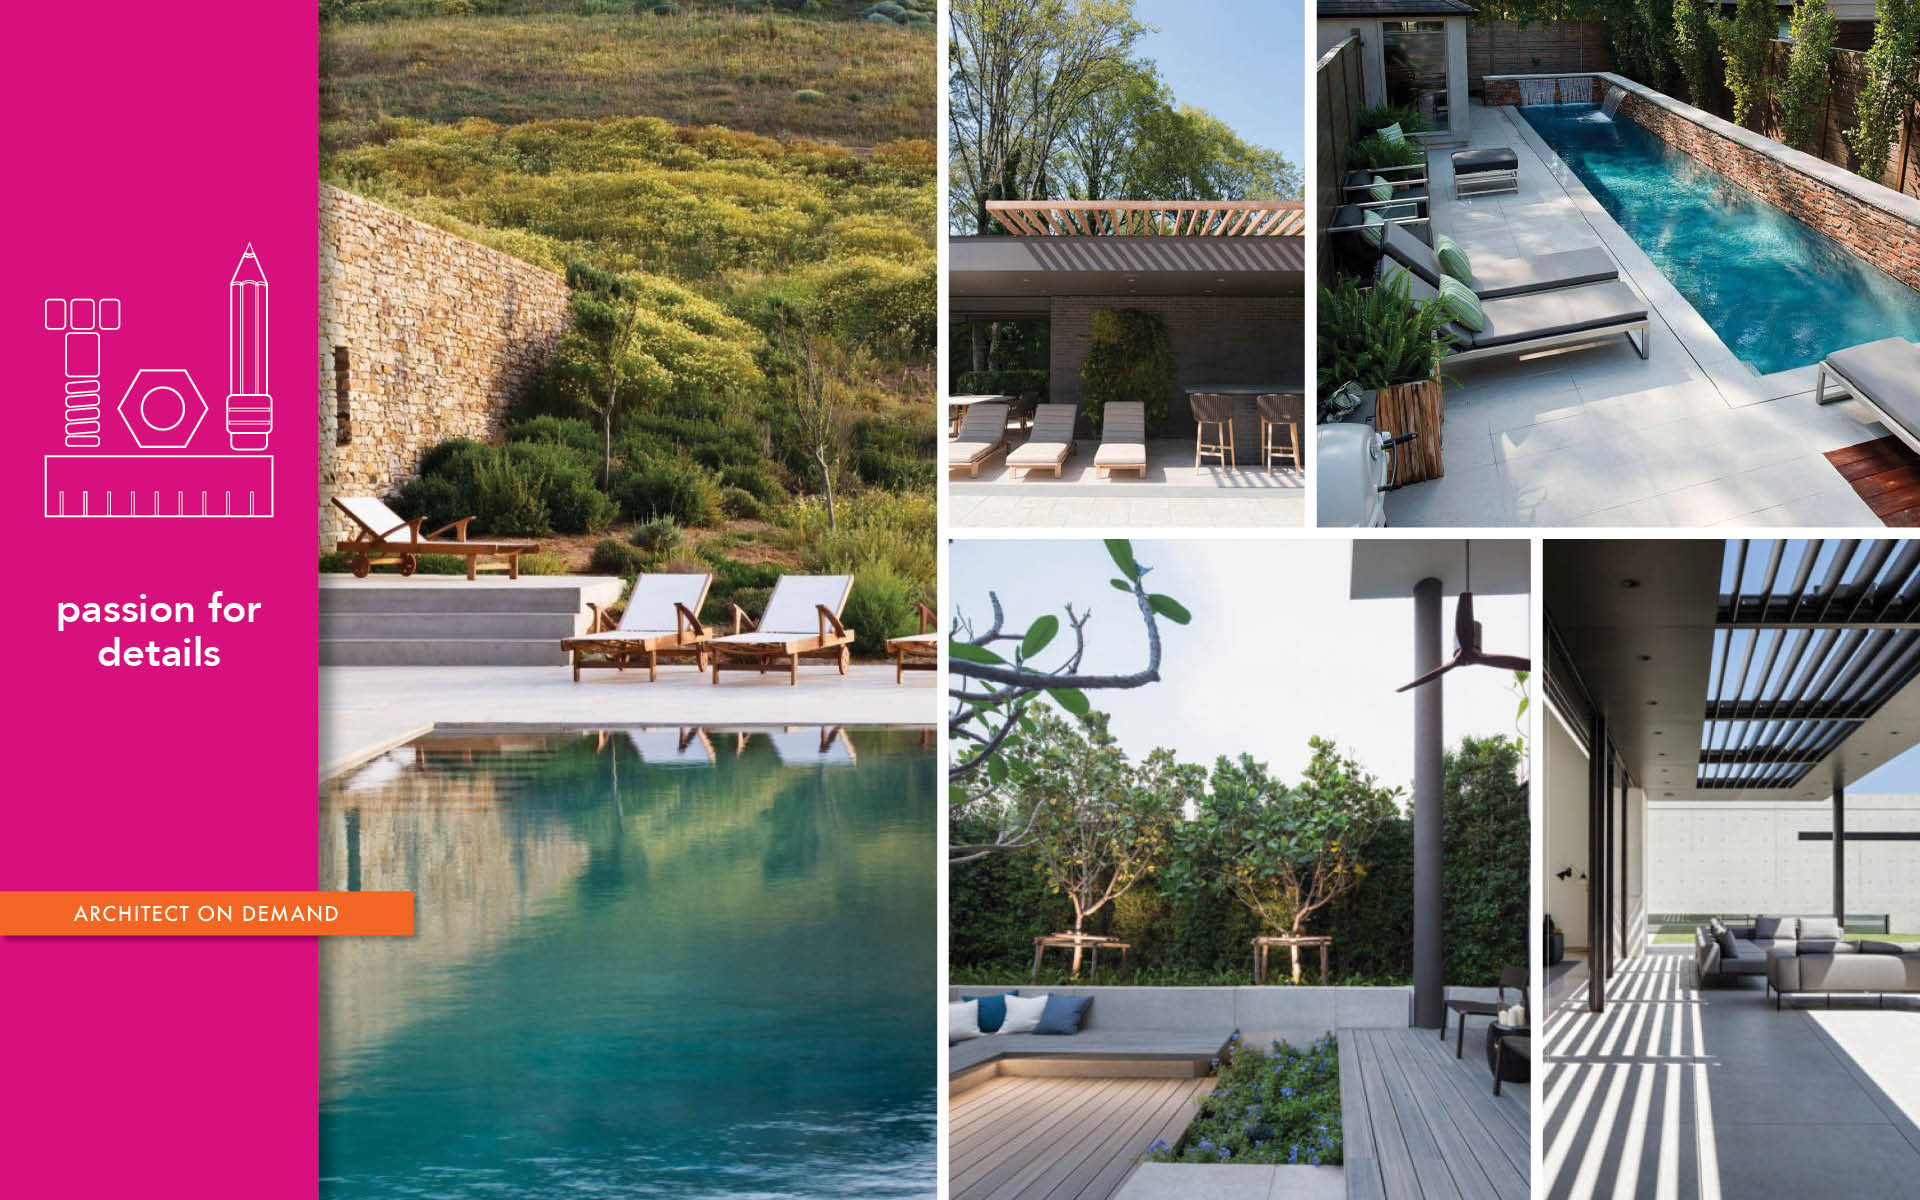 re-imagining, pool deck, terrace, garden, architect-on-demand, advice-without-strings